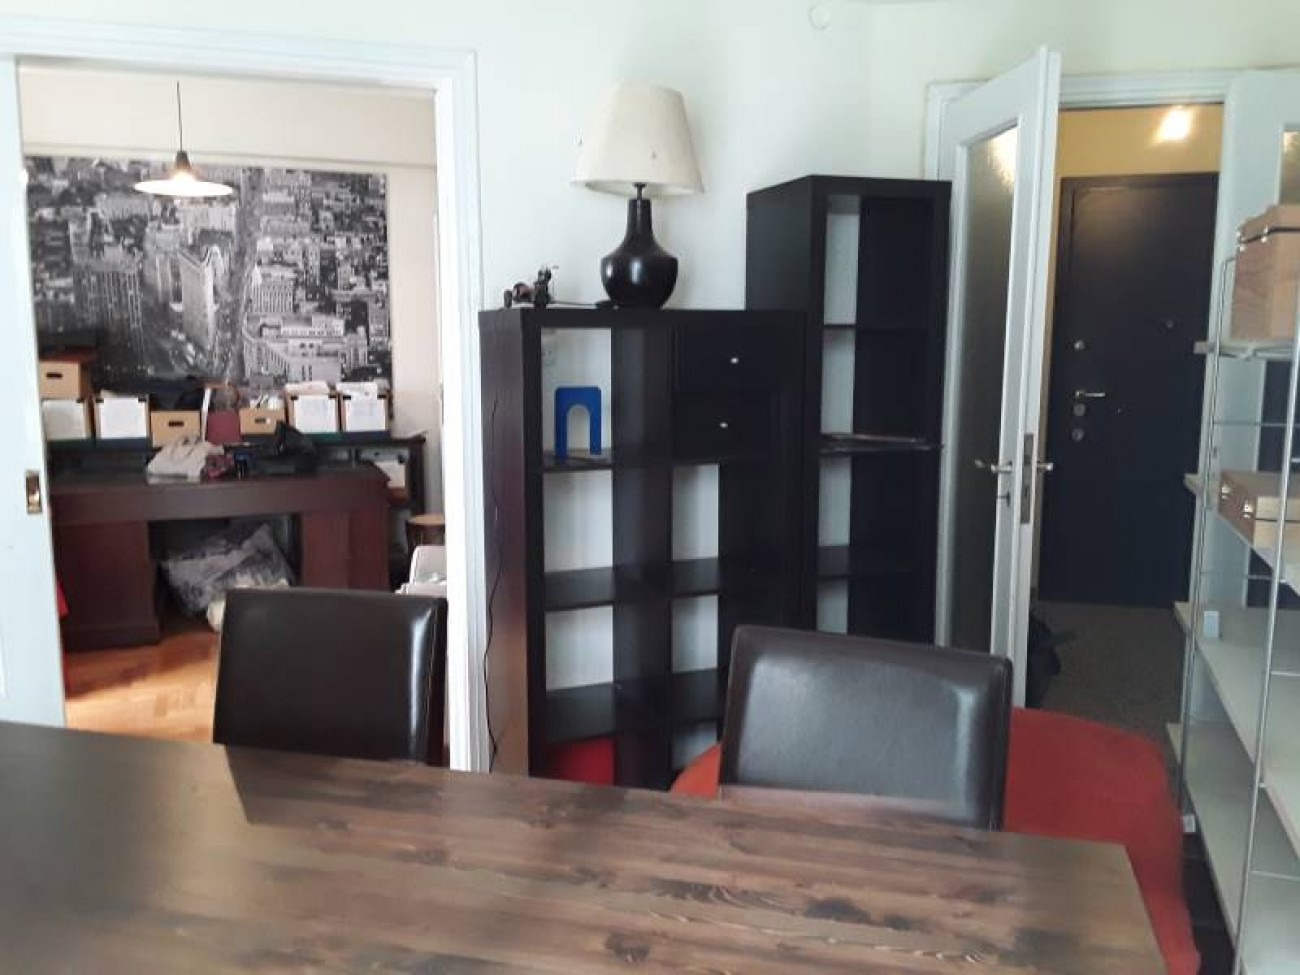 Apartment for Sale in Pagkrati, Athens City Center, Greece